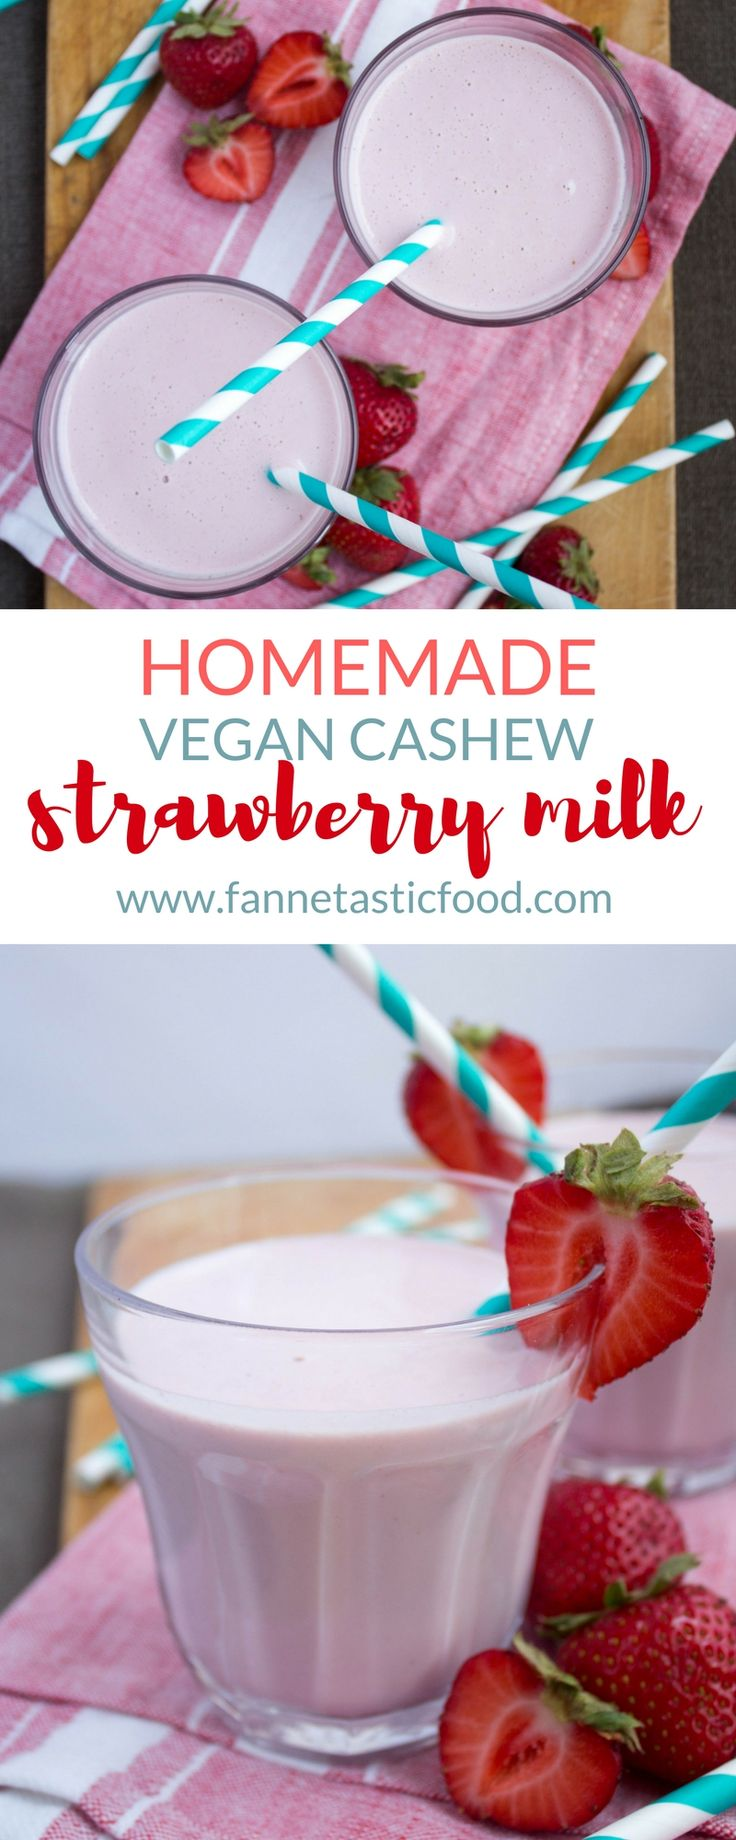 Homemade Strawberry Milk - making homemade vegan cashew milk is surprisingly easy! Blend it with strawberries for a creamy, rich, healthy, and tasty homemade strawberry milk that your kids will love!